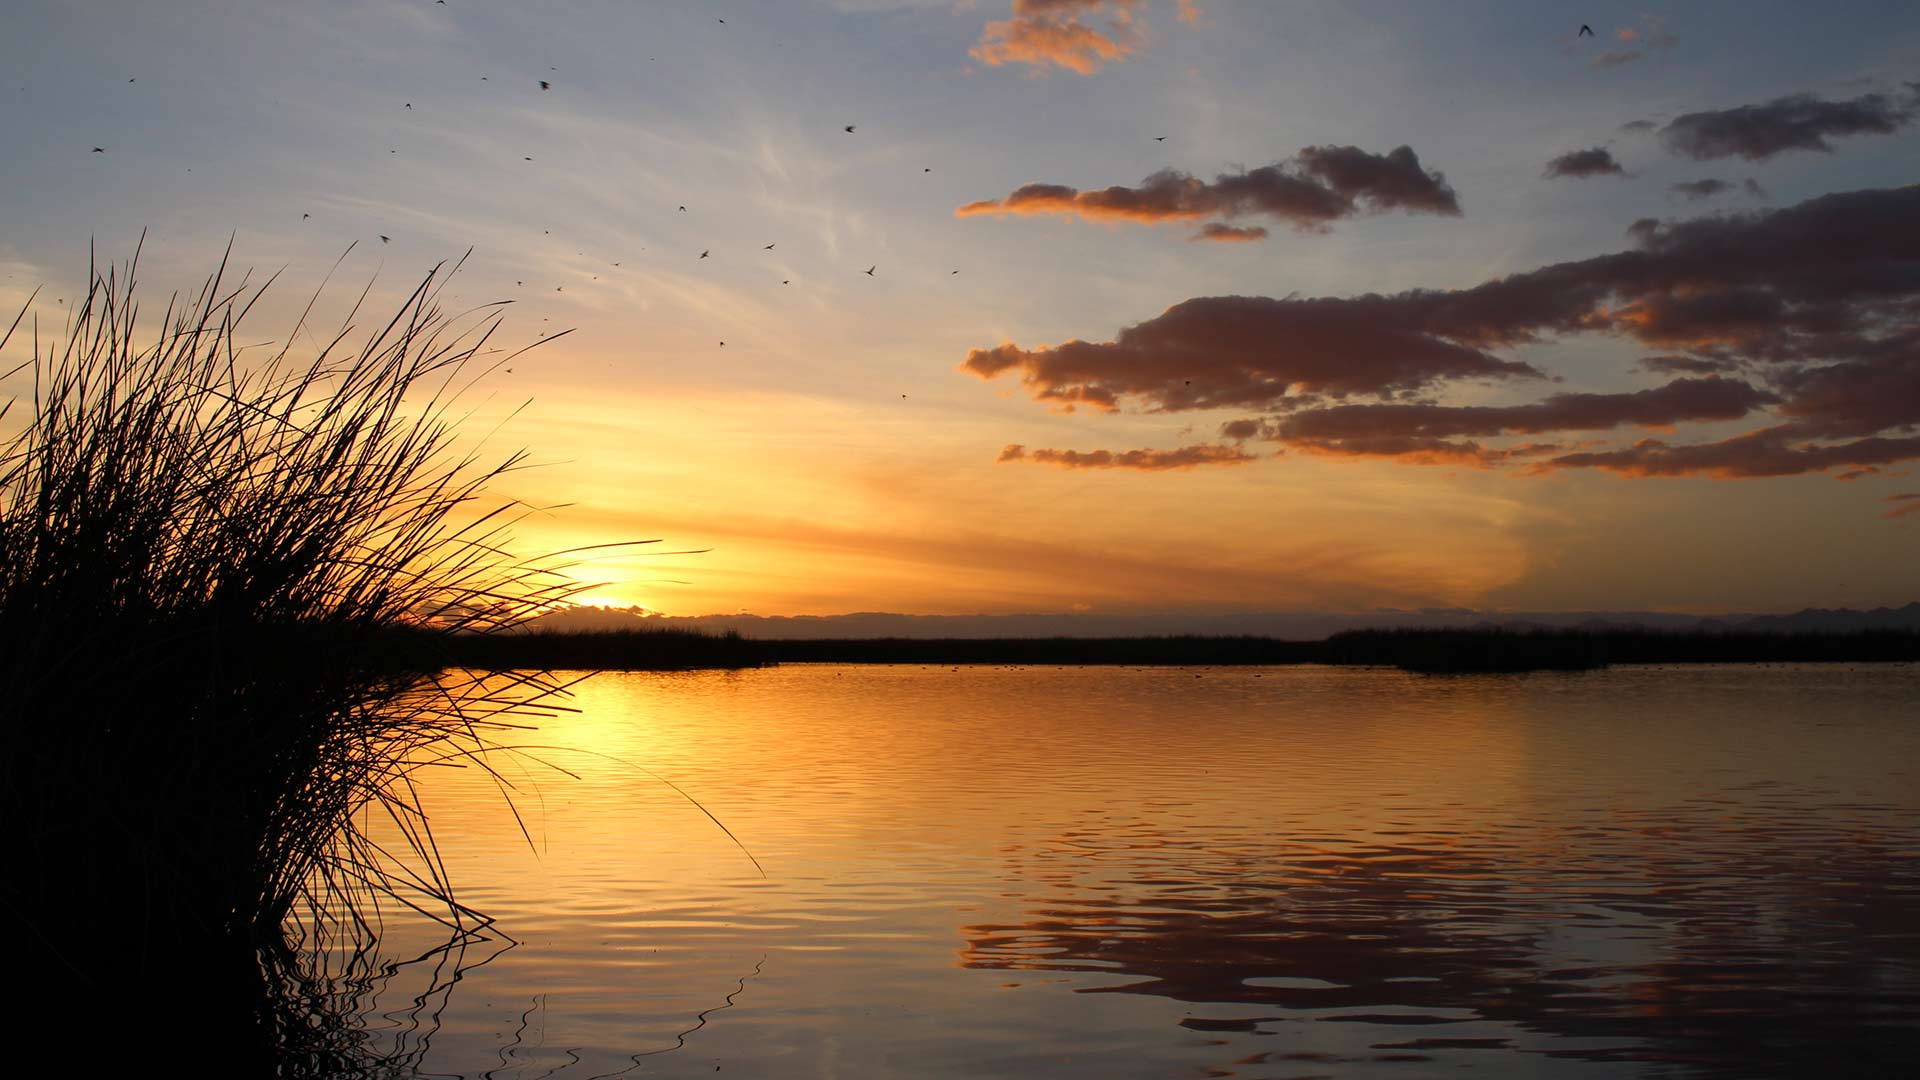 Sunset at the Ciénega de Santa Clara in northern Mexico. The wetland is fed by salty runoff from American farms near Yuma, Arizona.